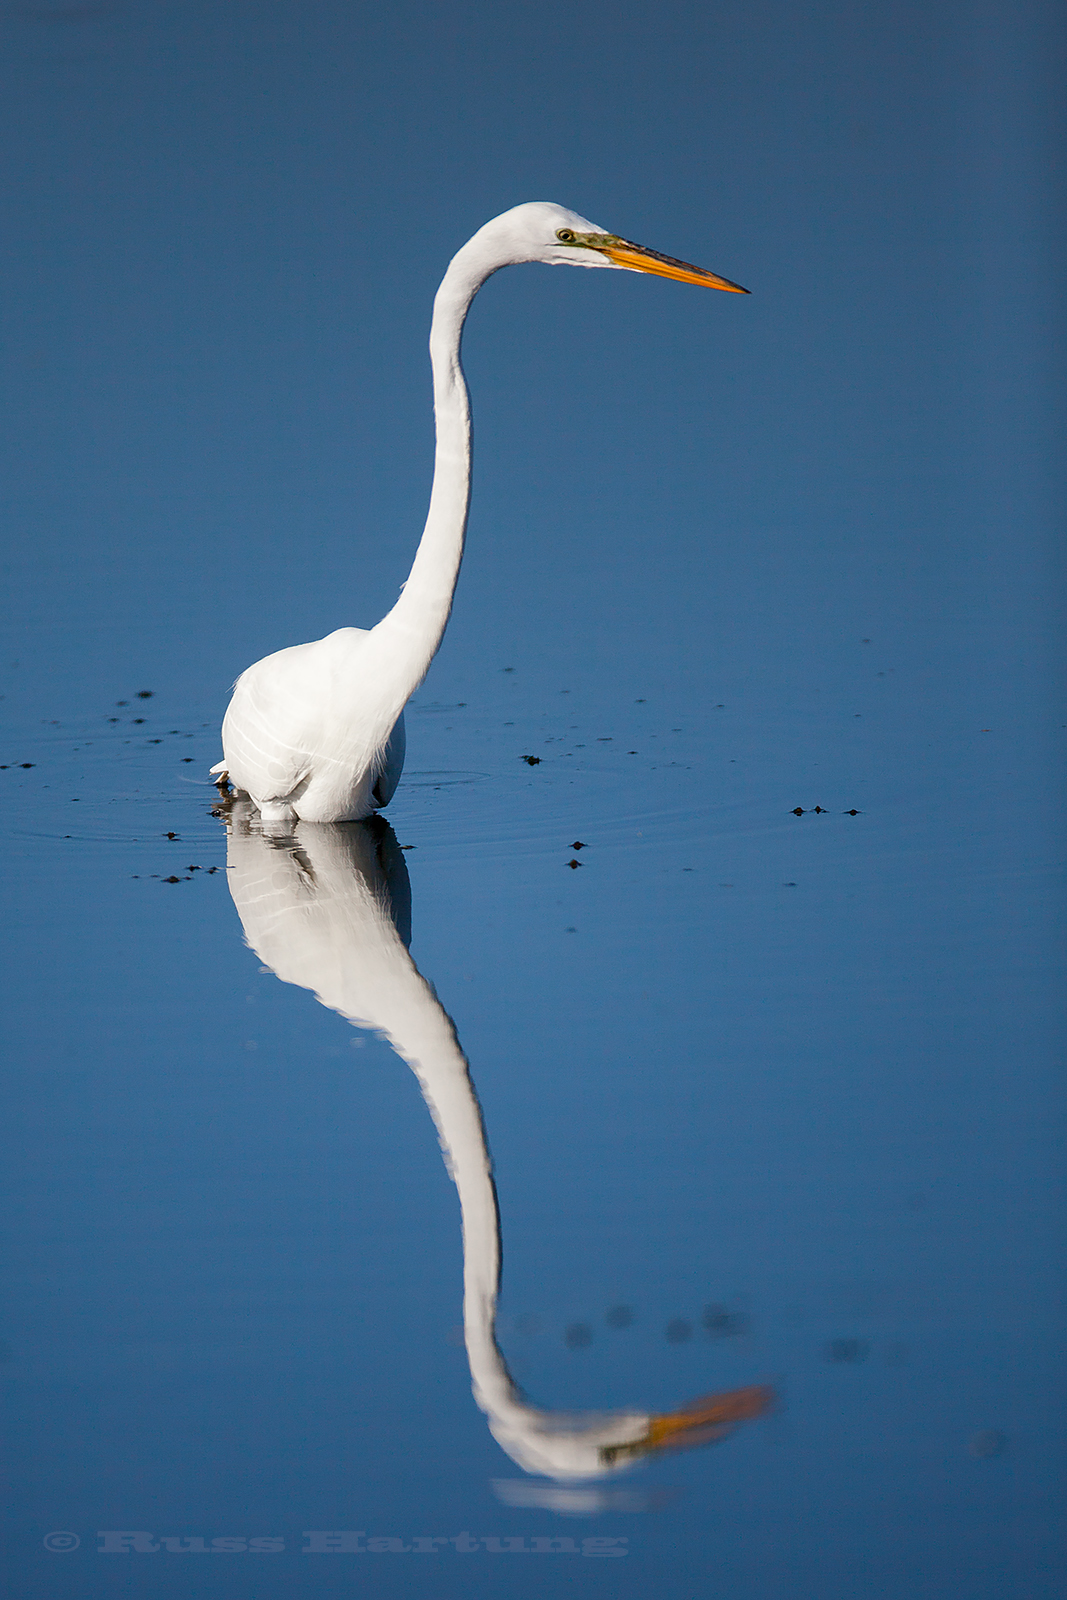 Great Egret fishing in the Orlando Wetlands Park, Florida during Spring migration.